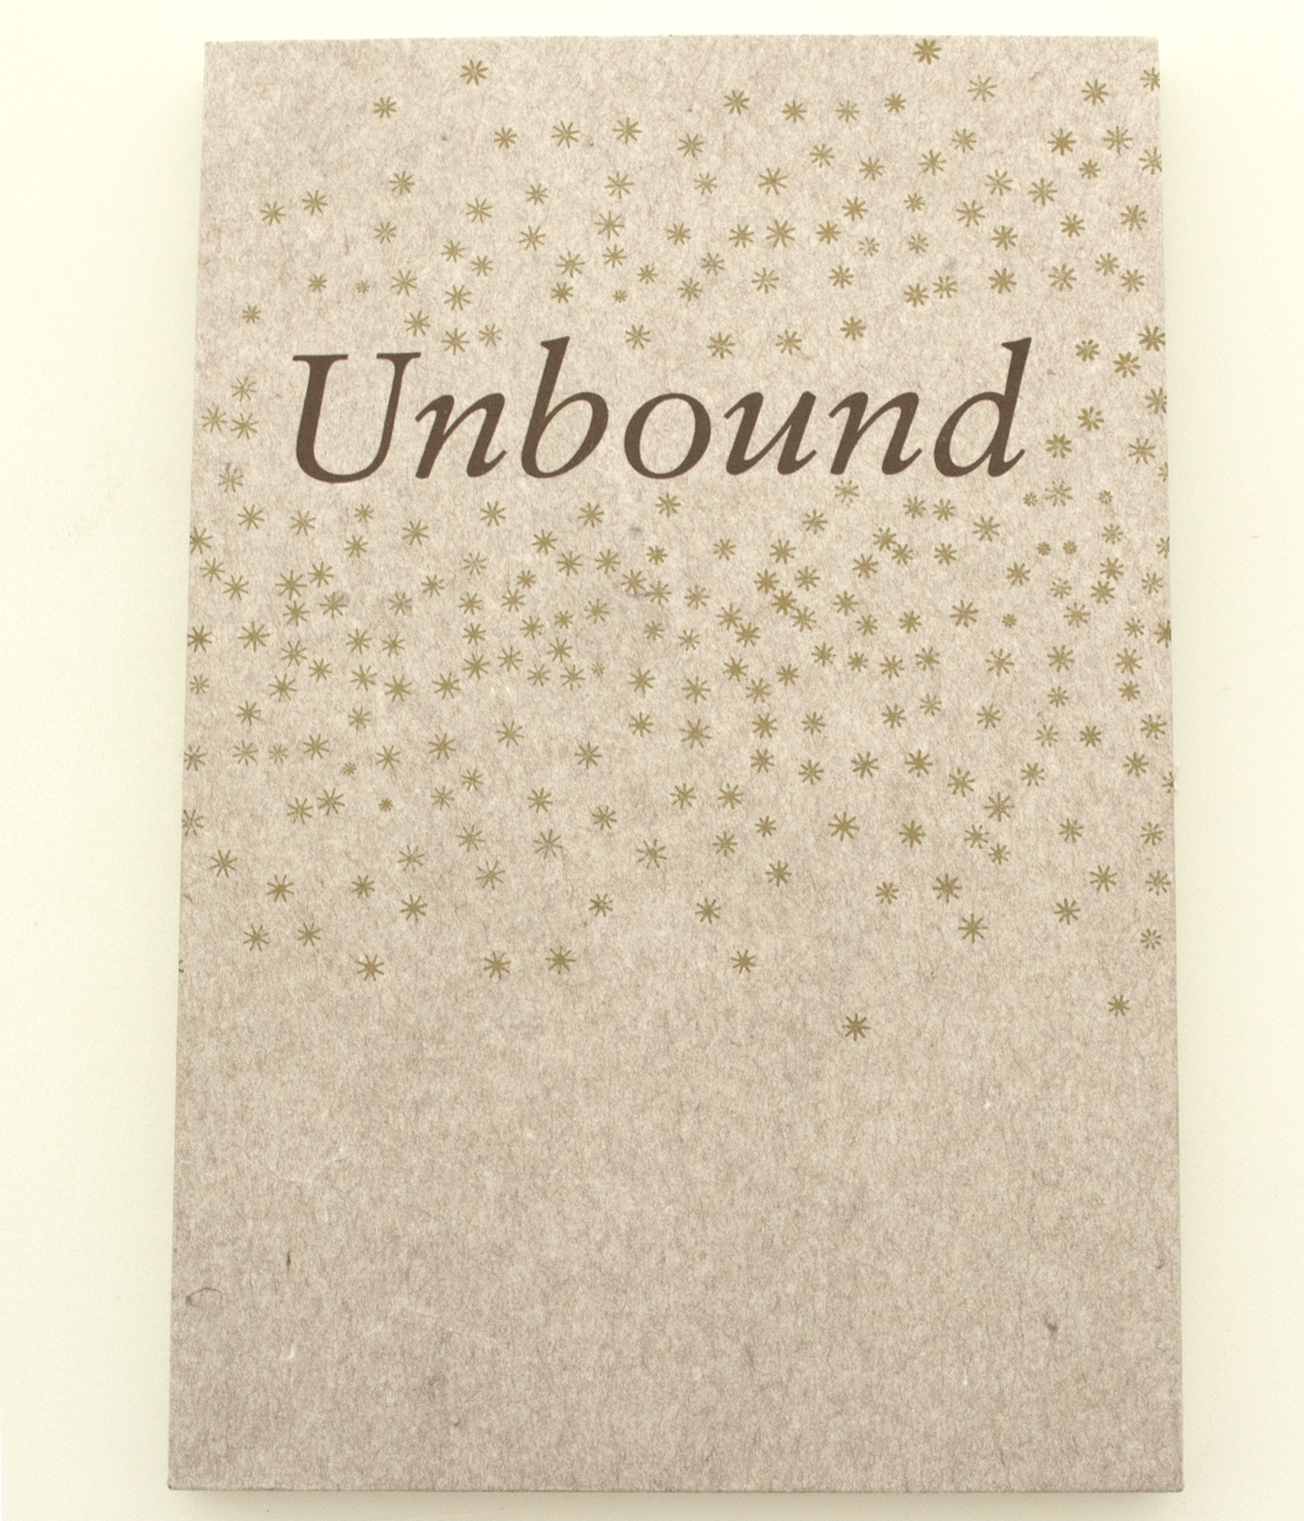 cover image of unbound by jessica peterson